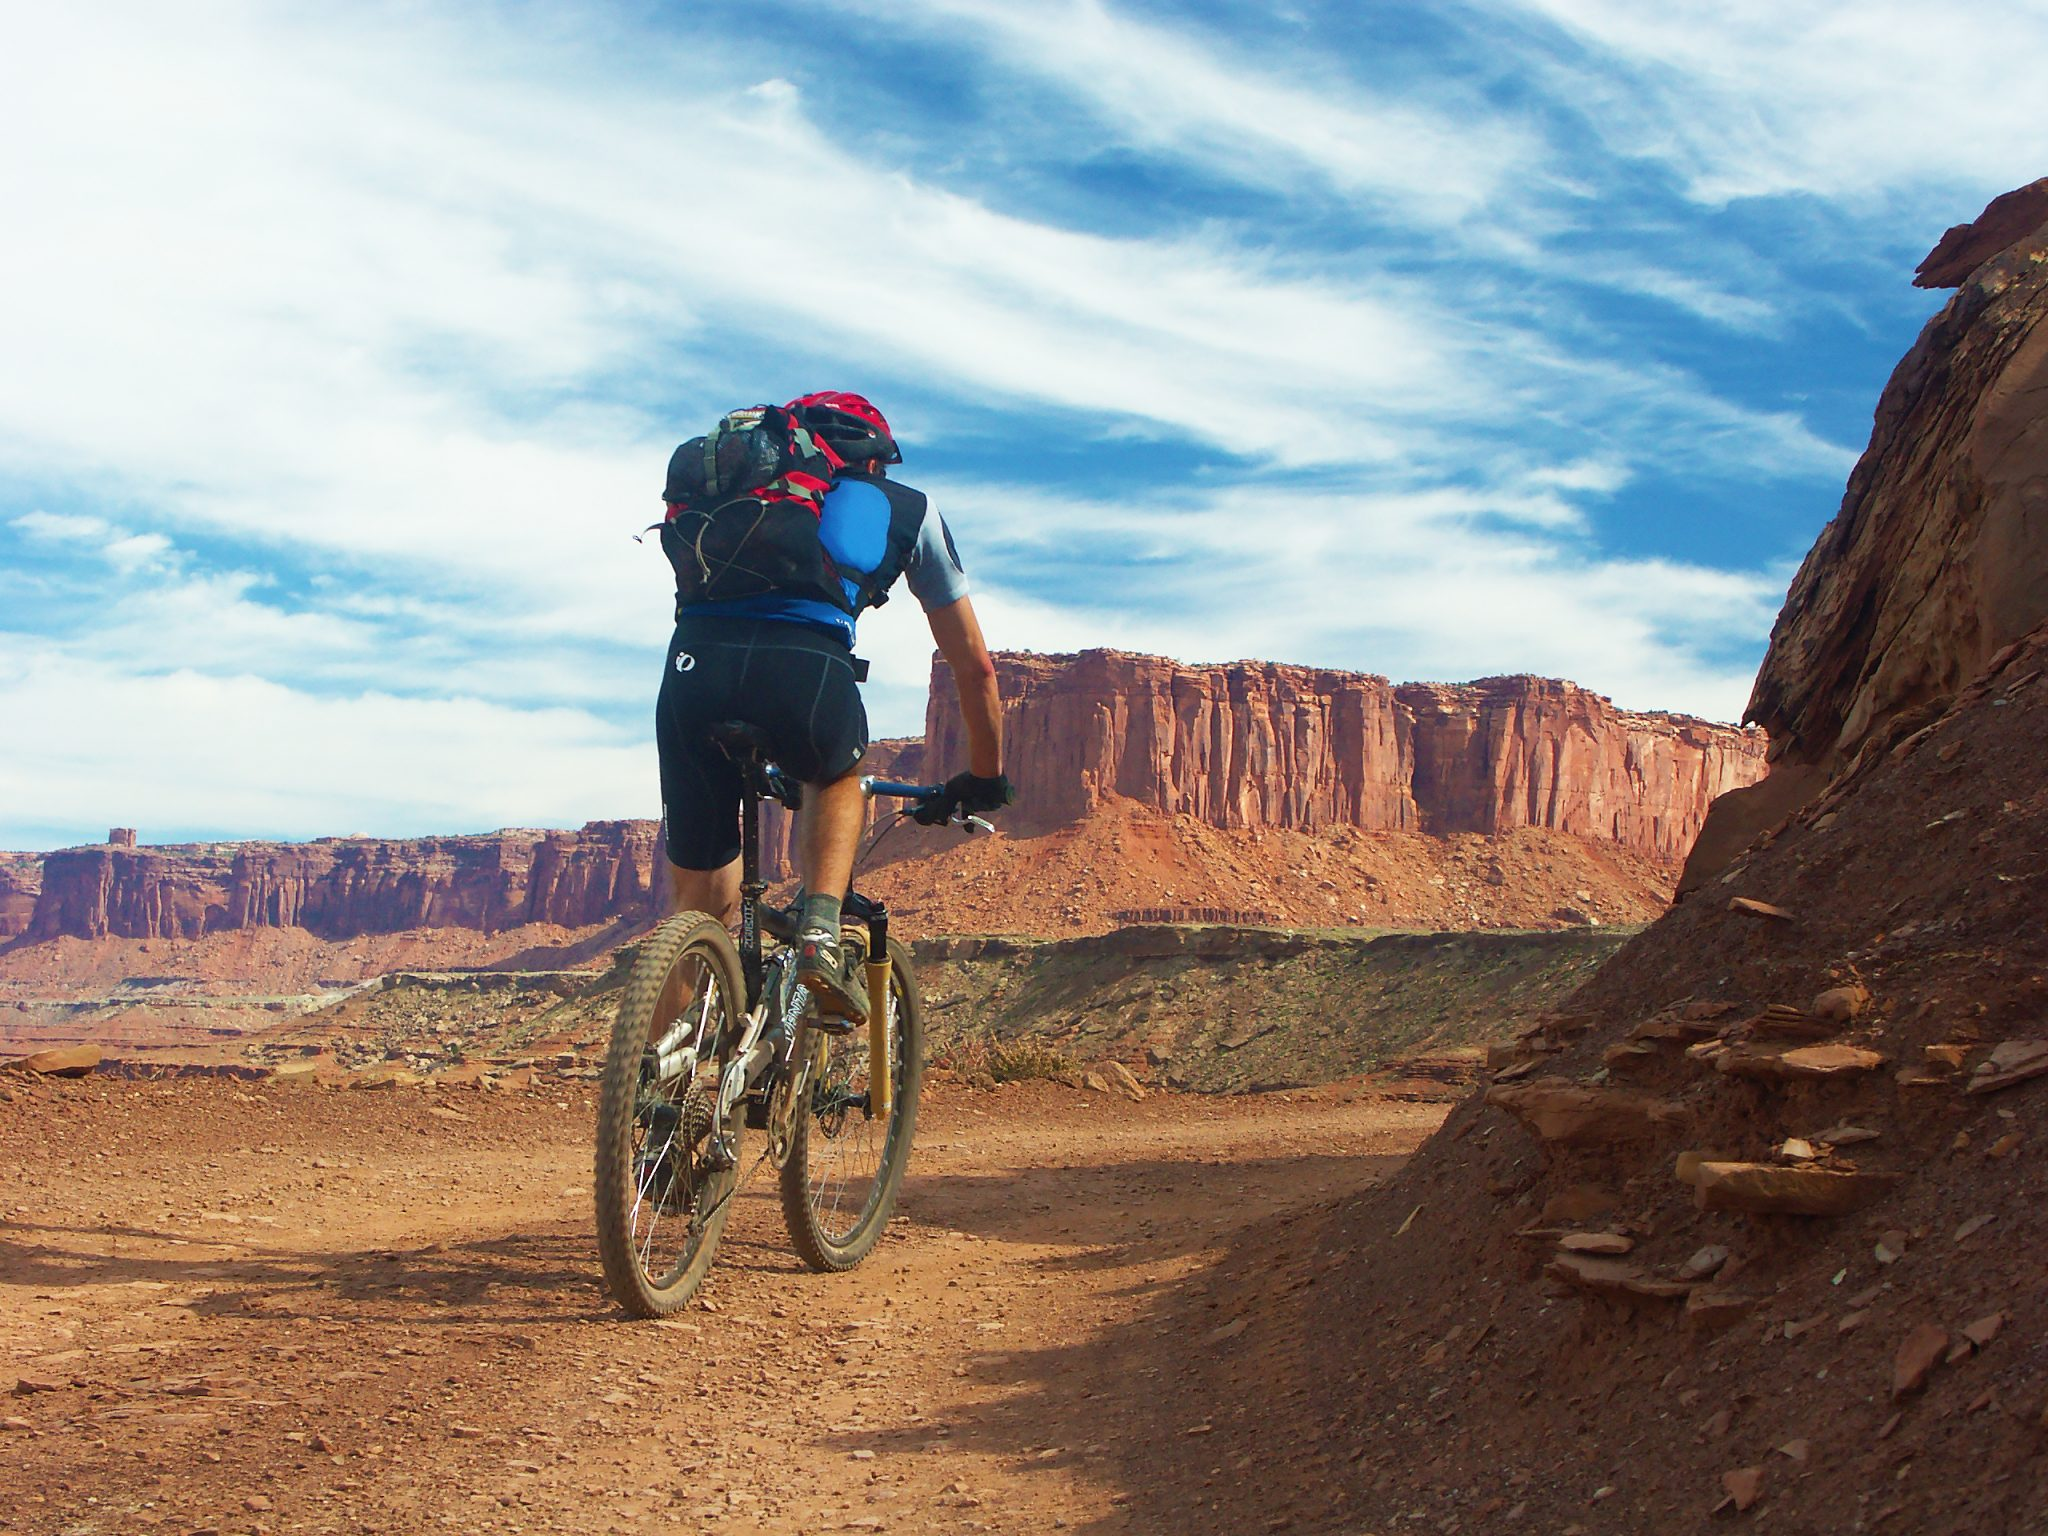 The White Rim Trail in Canyonlands National Park near Moab, UT is a doubletrack route of 85 miles with camping